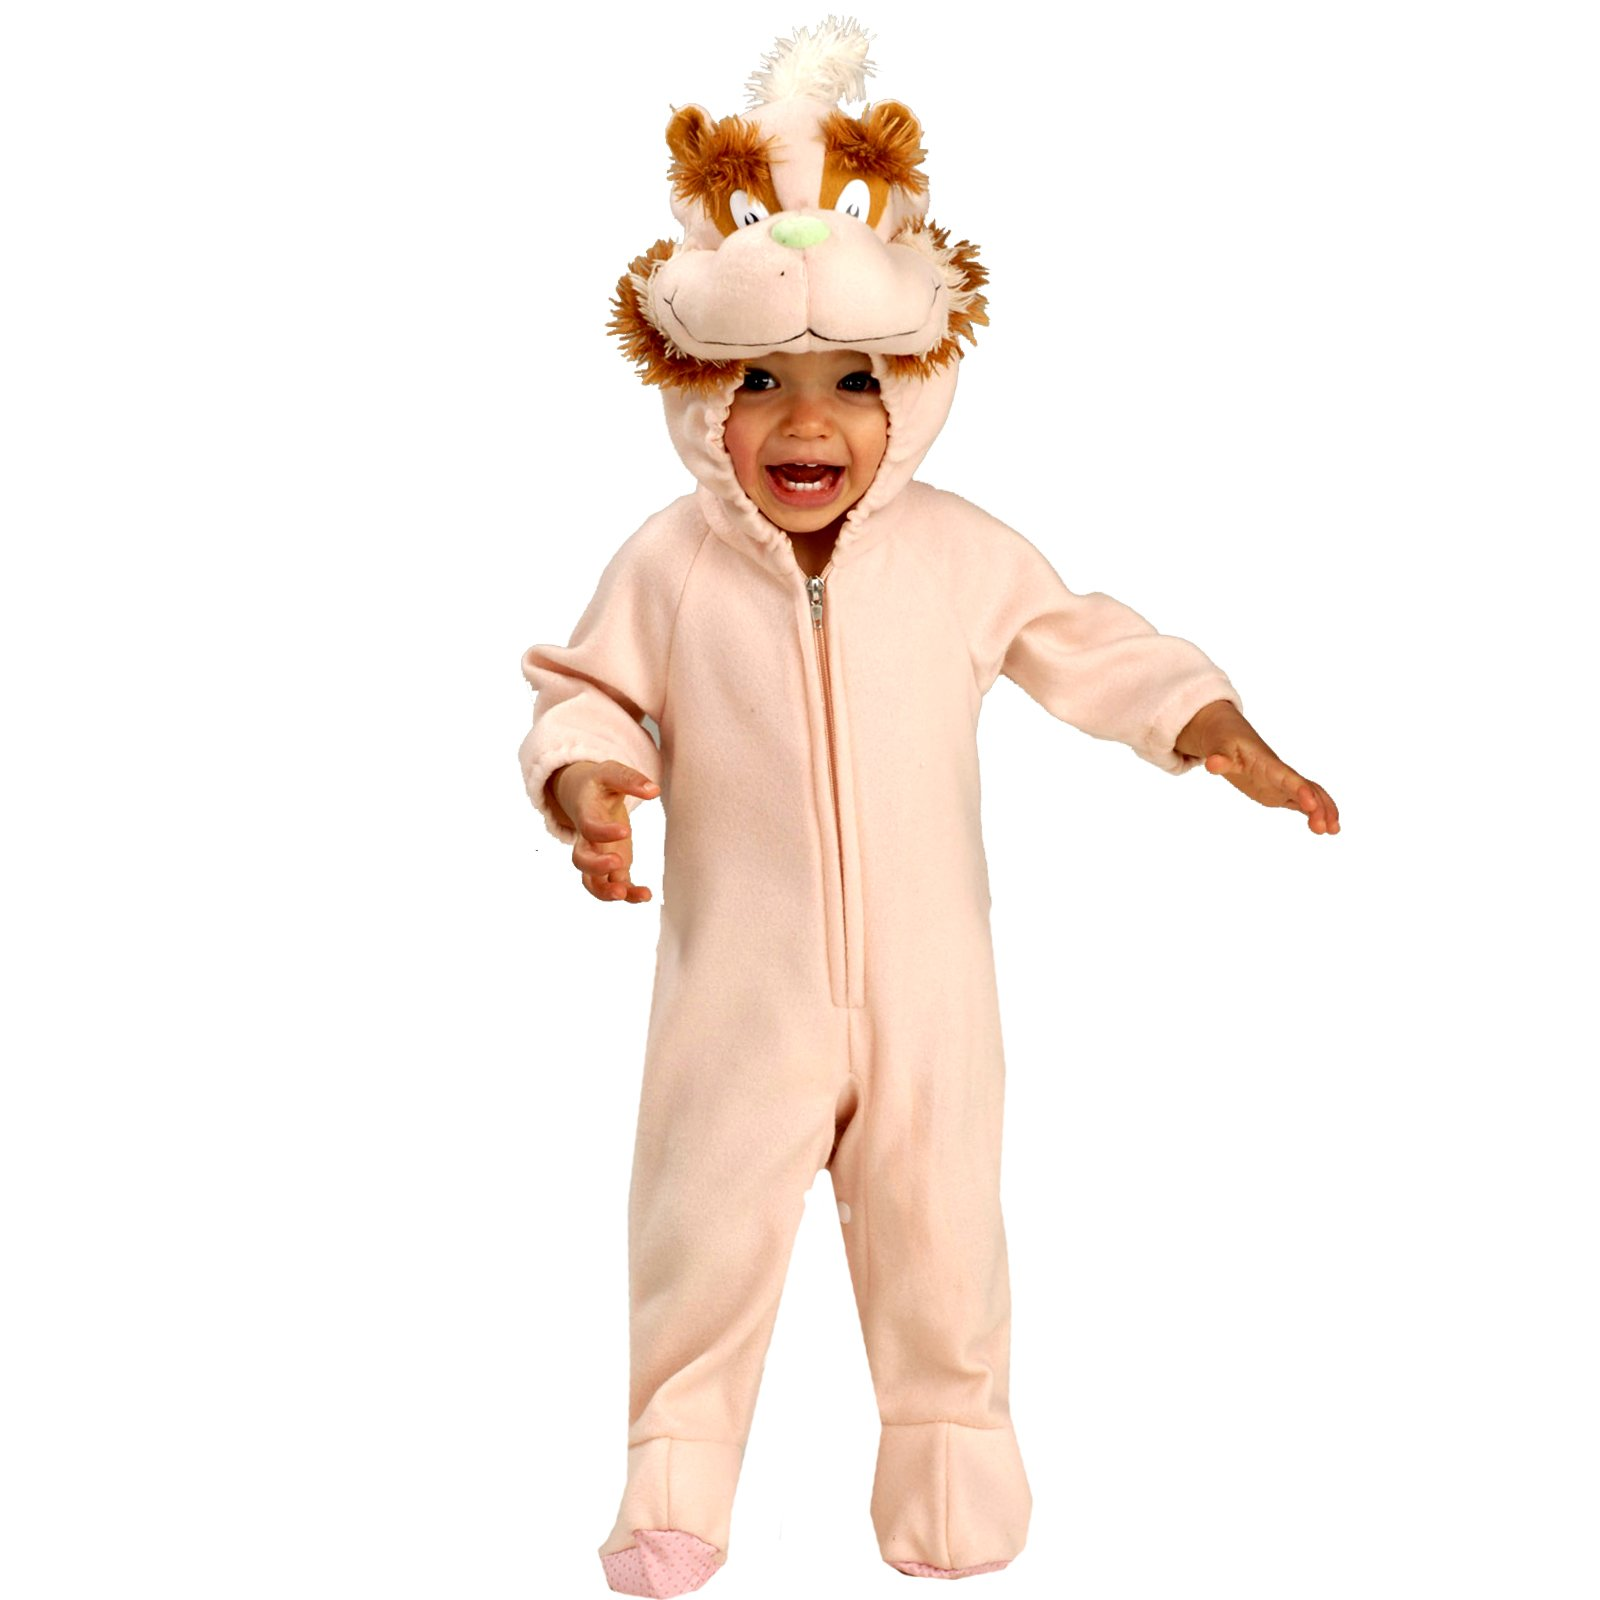 Dr. Seuss Horton Hears a Who - Who Deluxe Child Costume